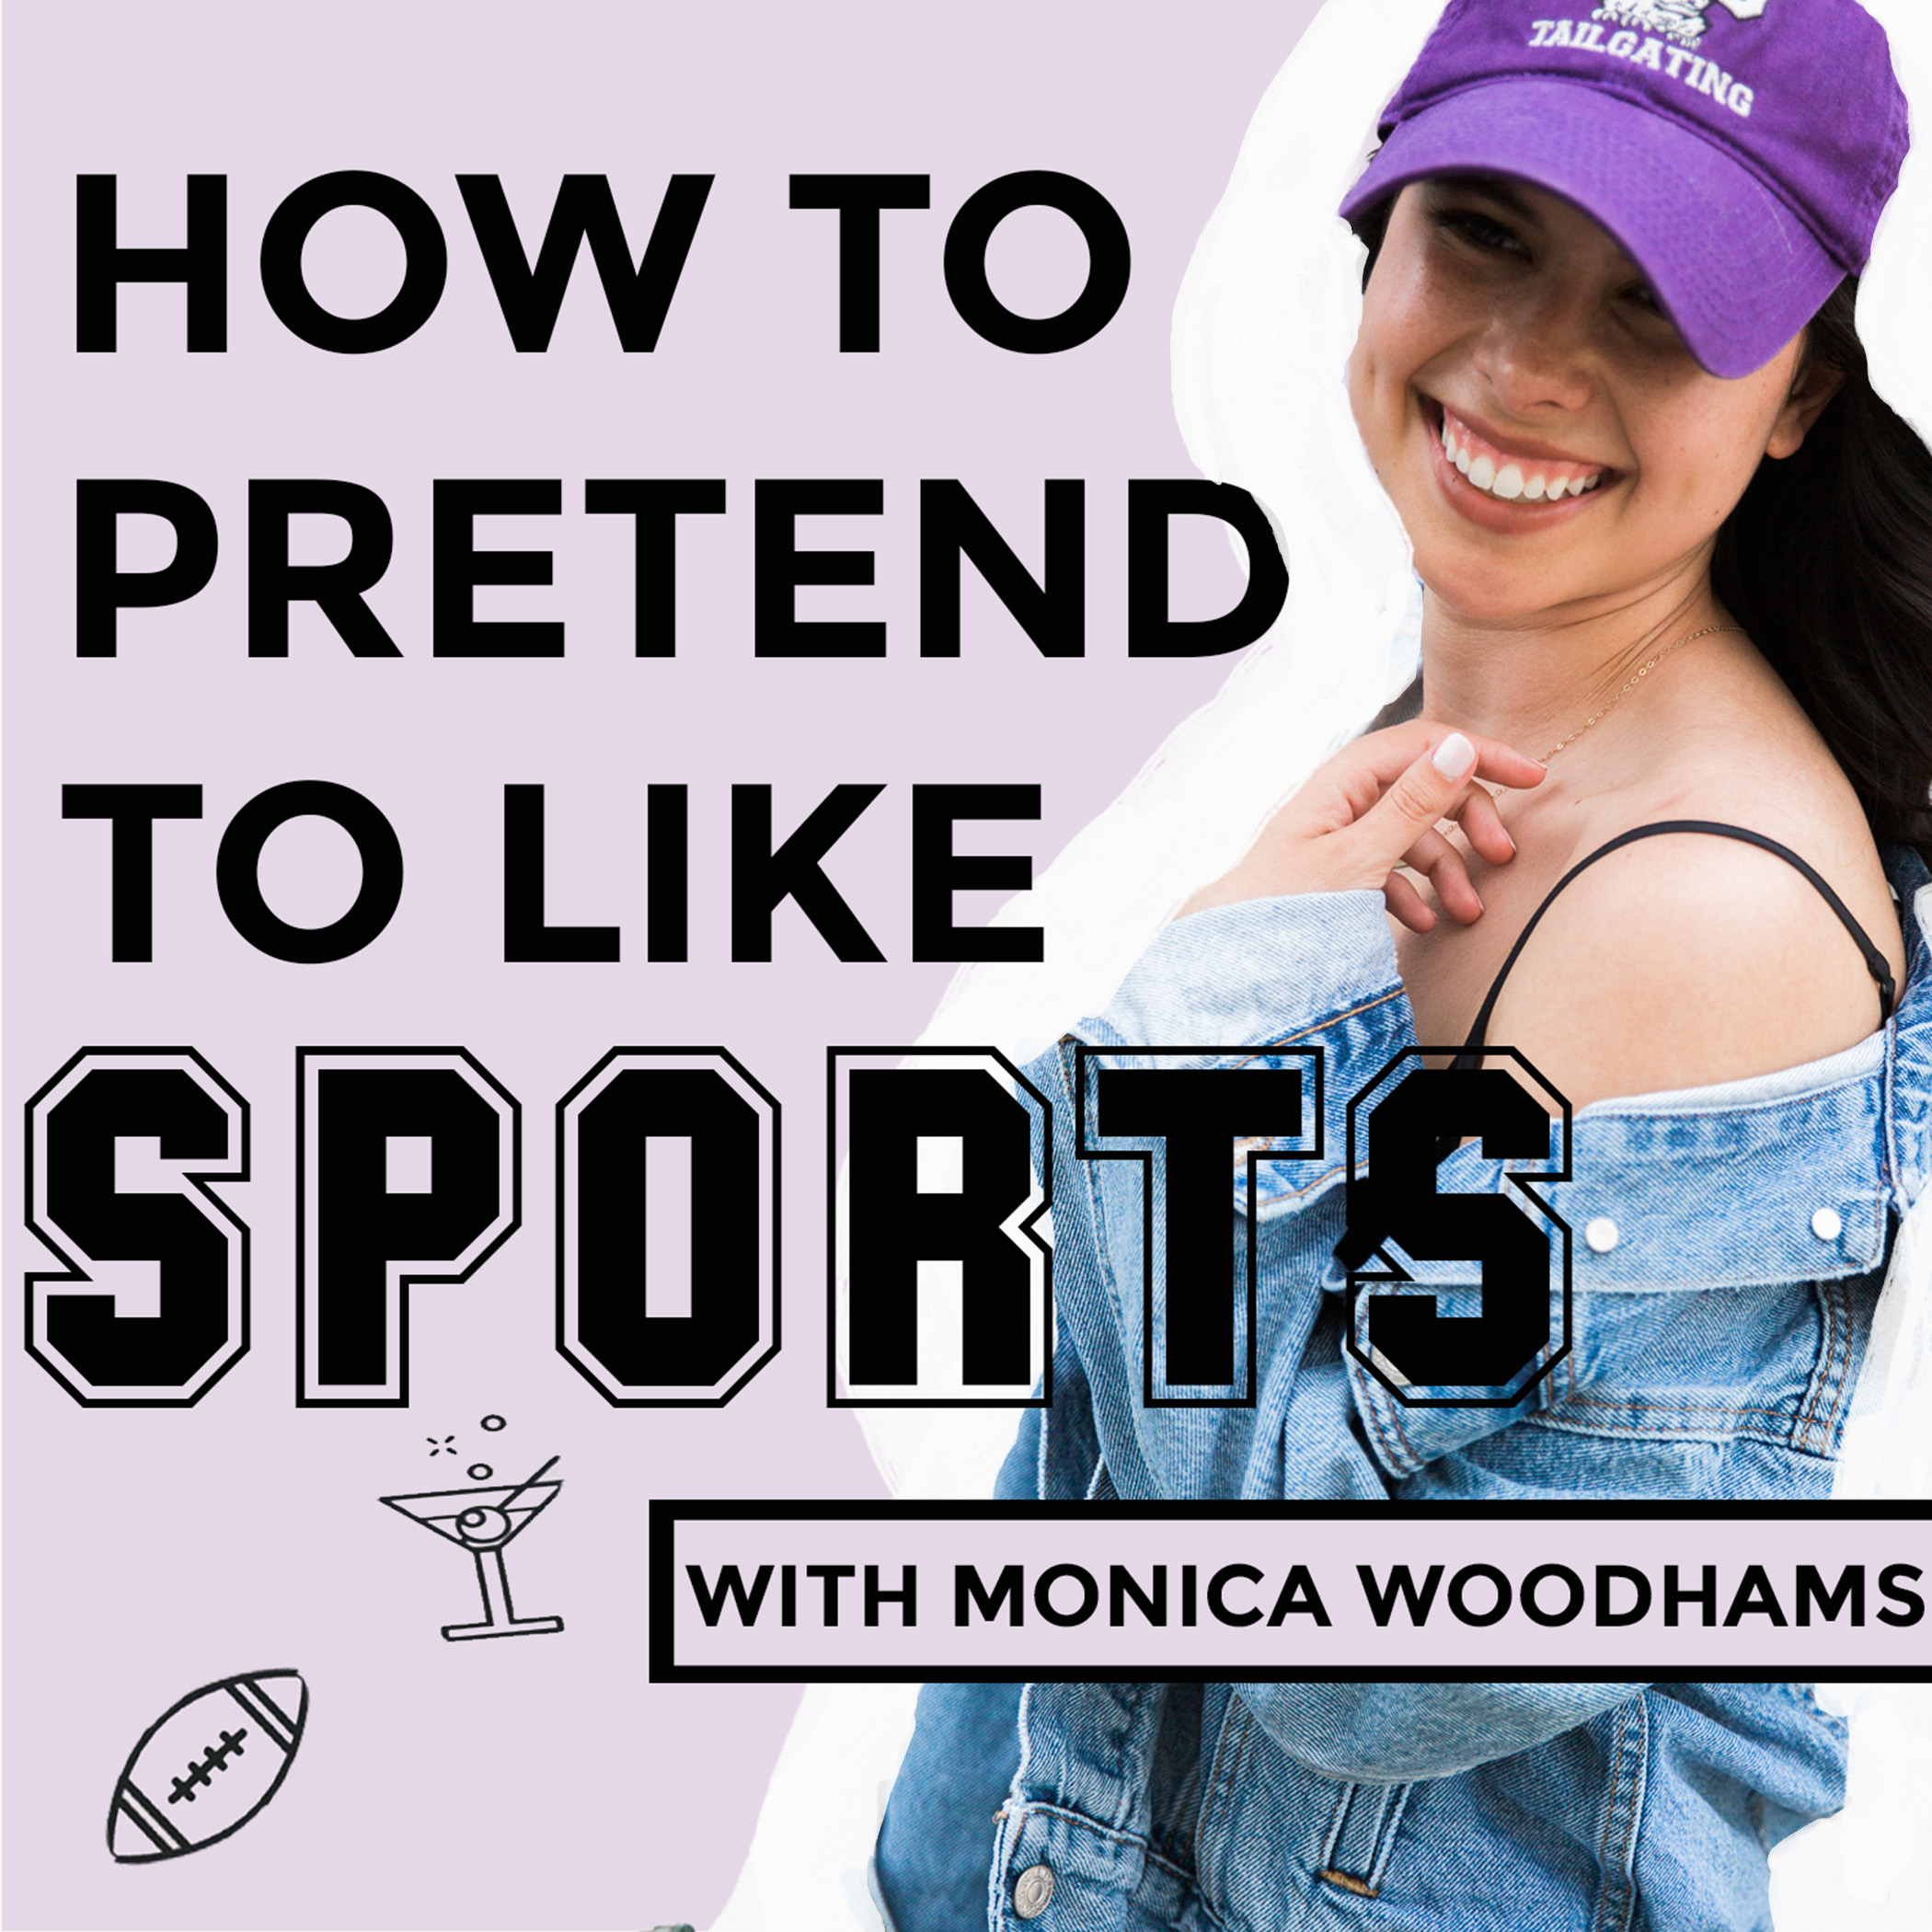 It's back: What sports are coming back, Thoughts on the Last Dance and staying sane scrolling through Instagram